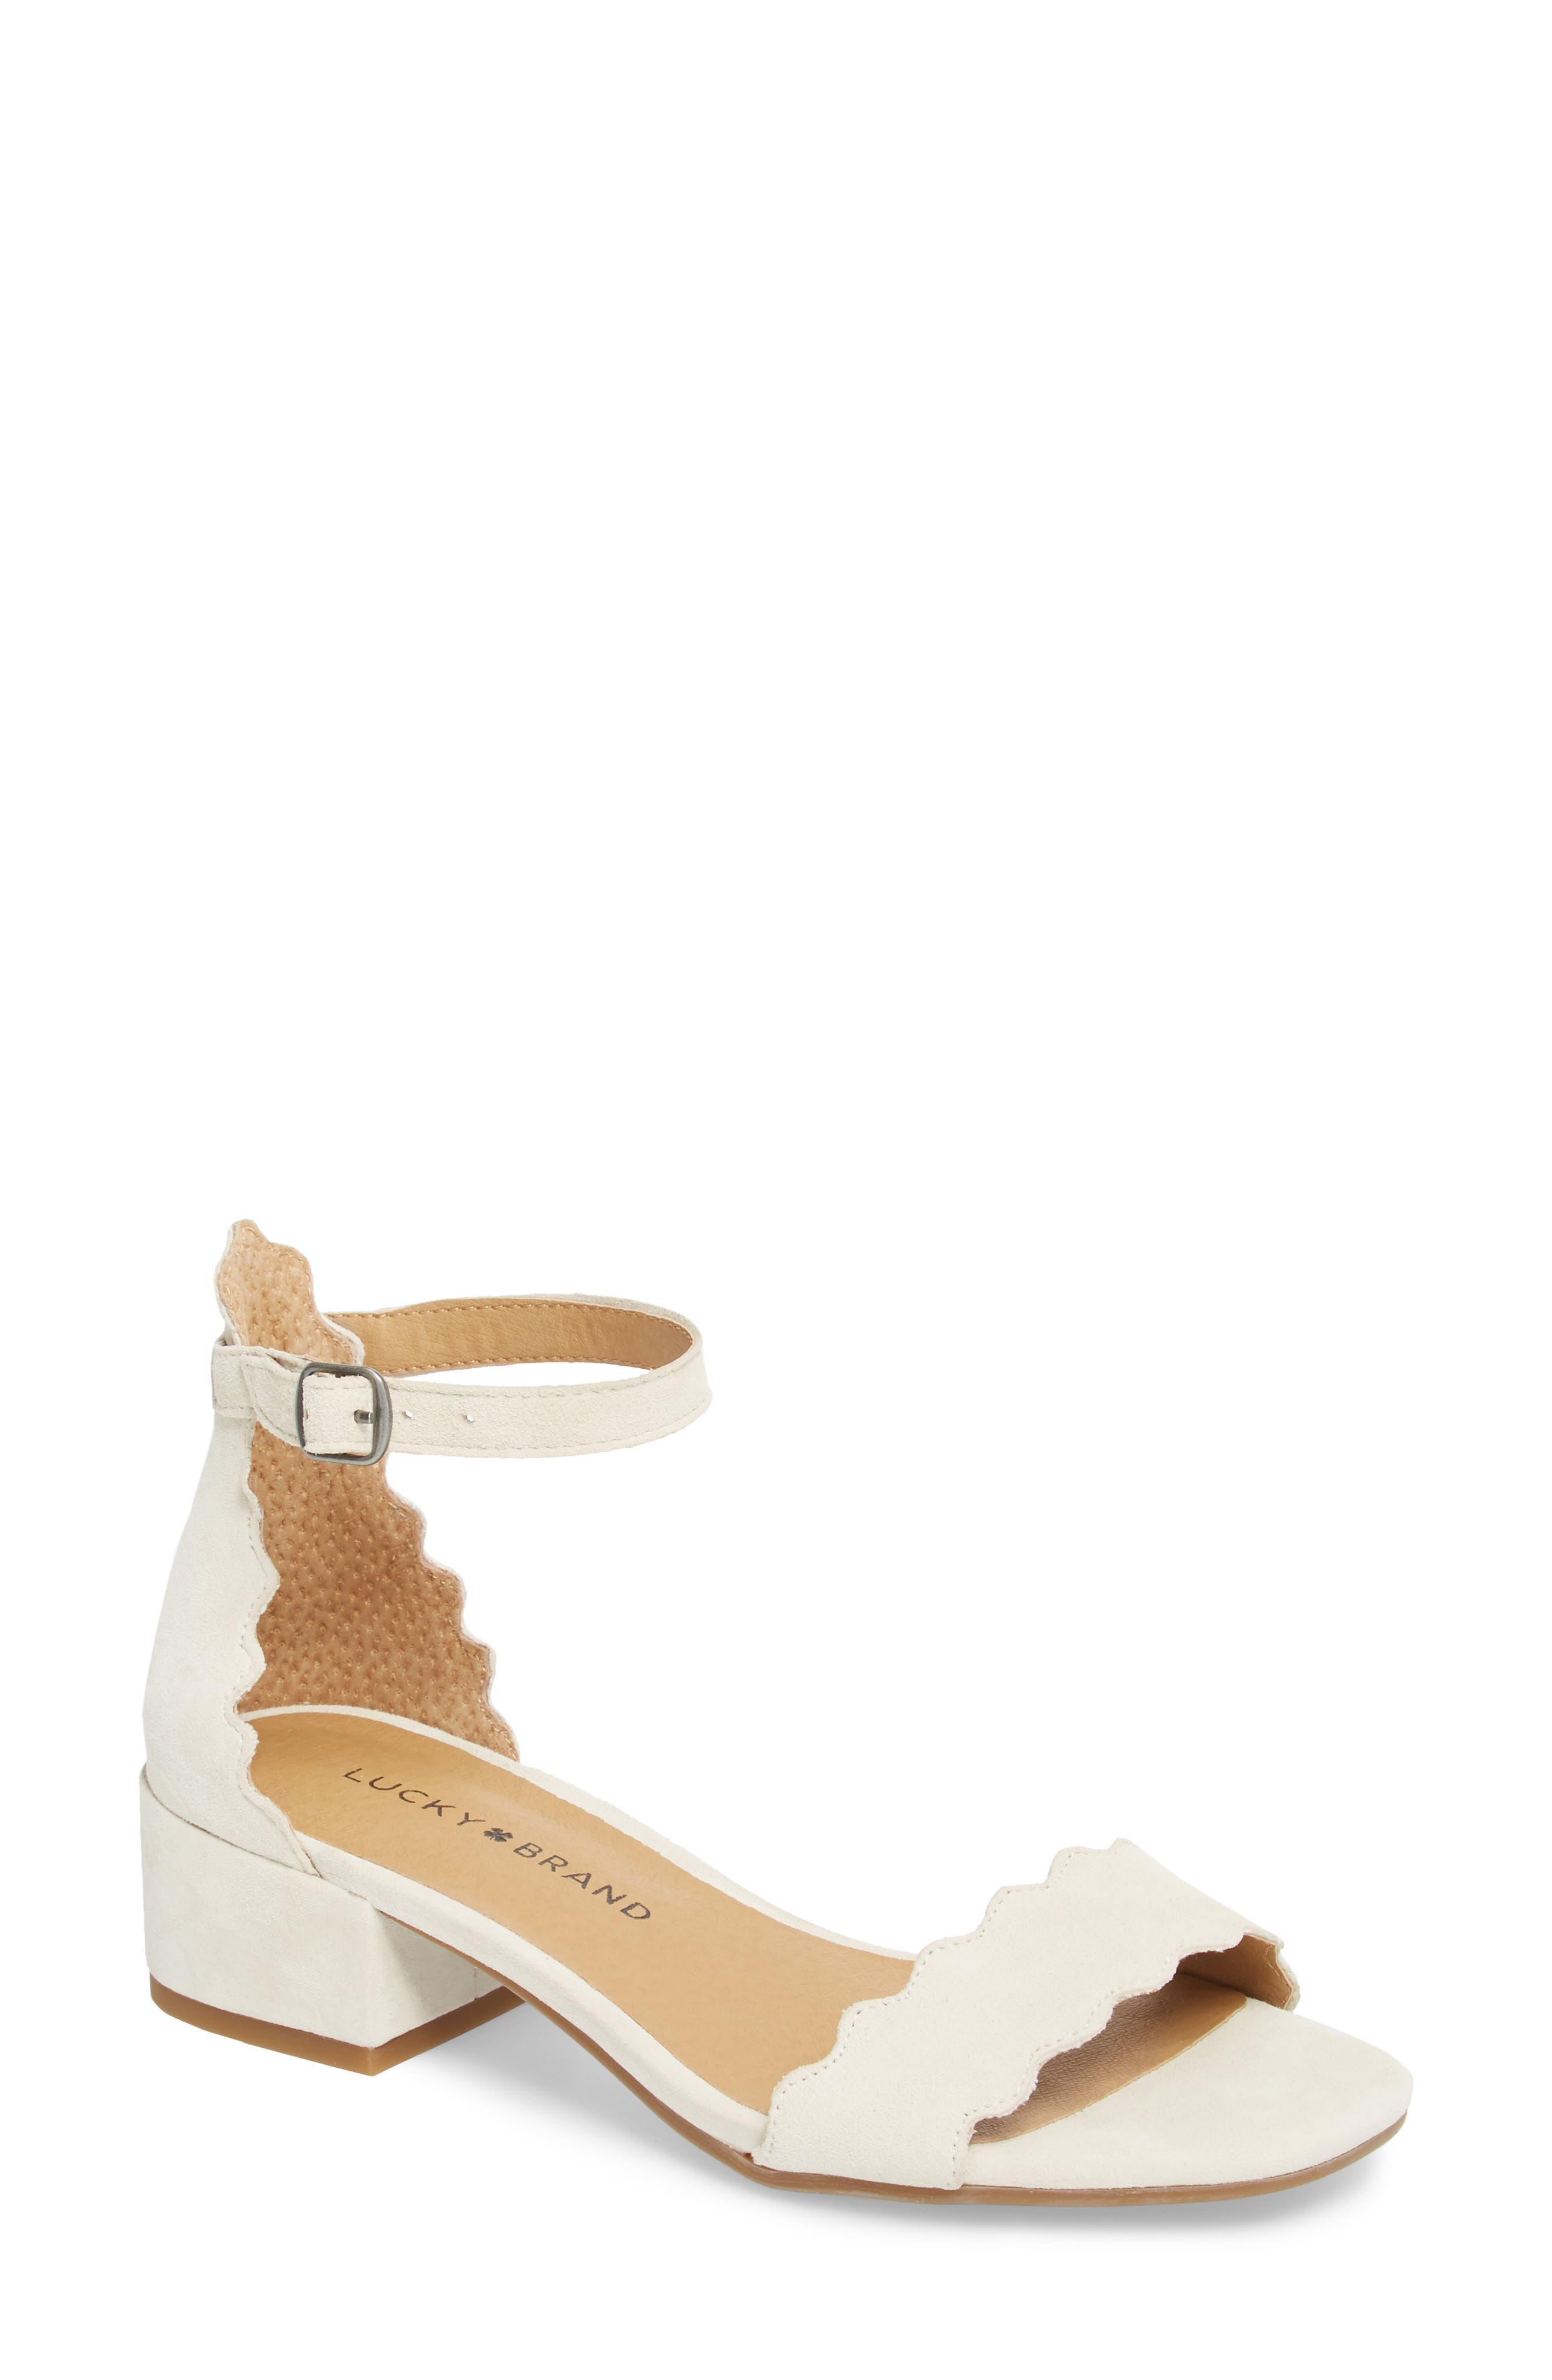 Alternate Image 1 Selected - Lucky Brand Norreys Sandal (Women)